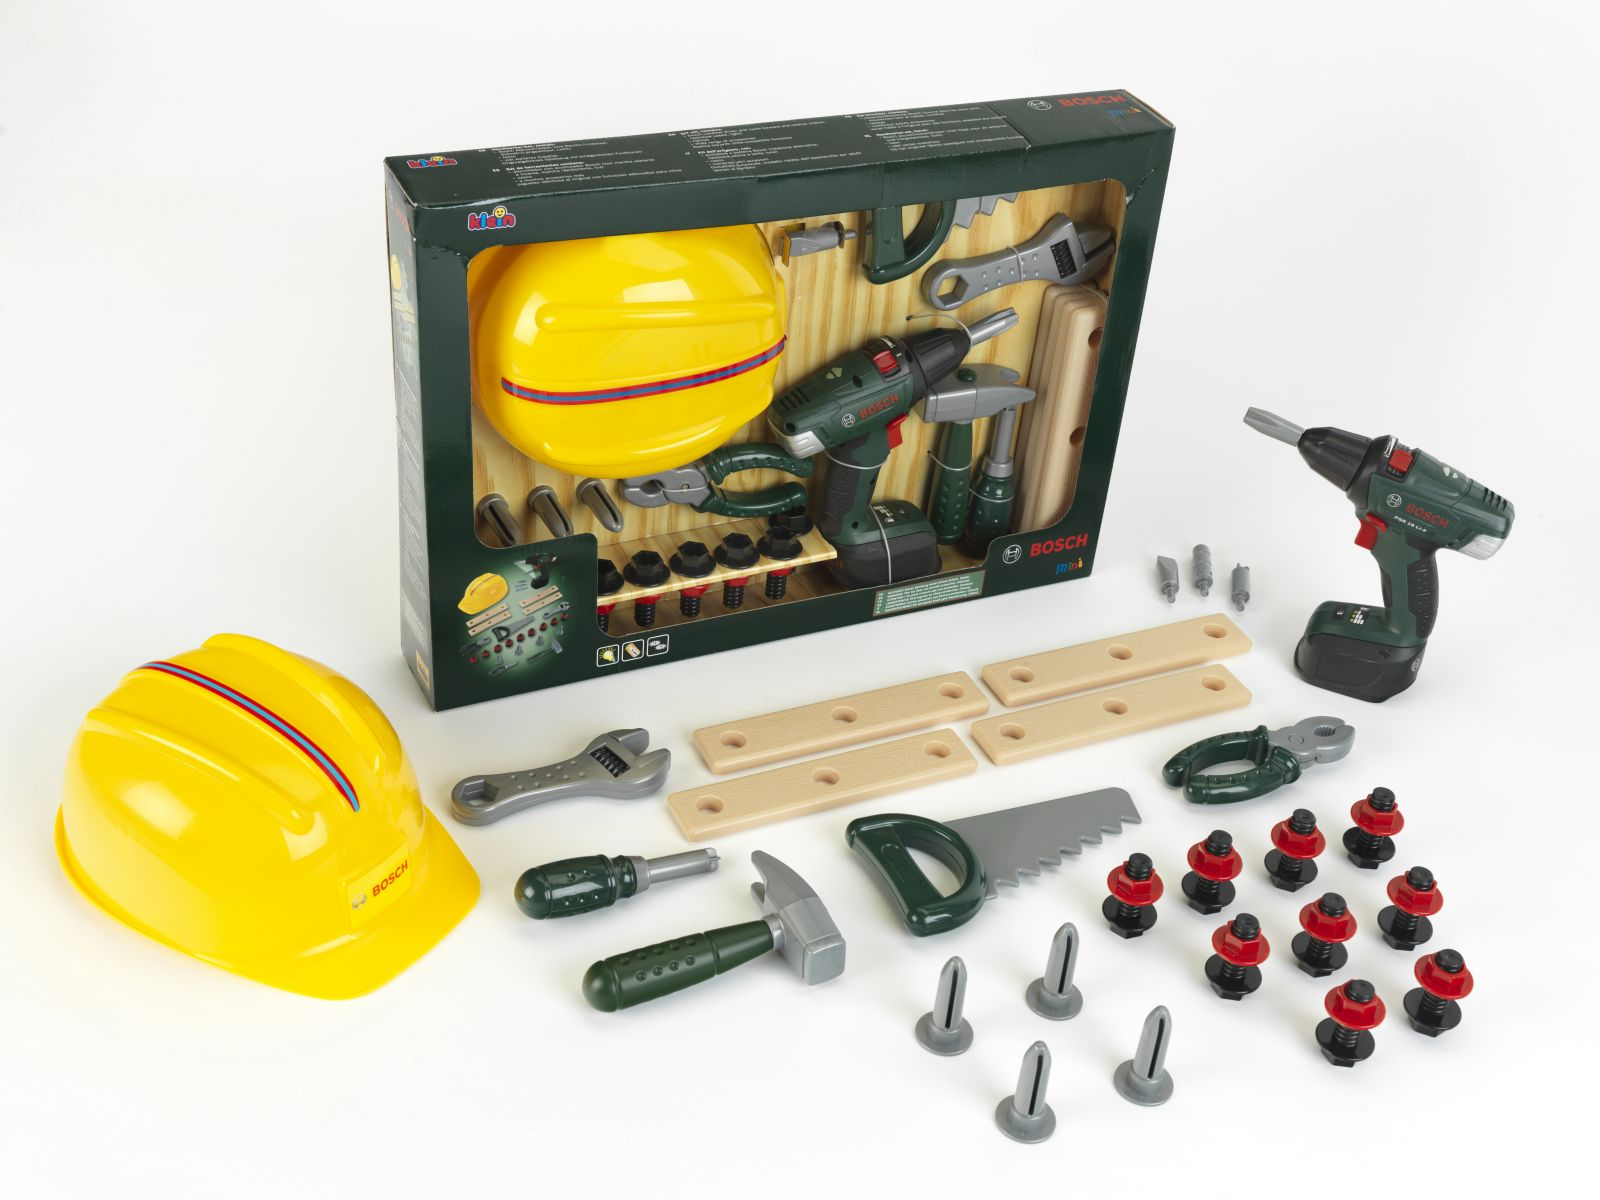 BOSCH DIY set (37-delig)